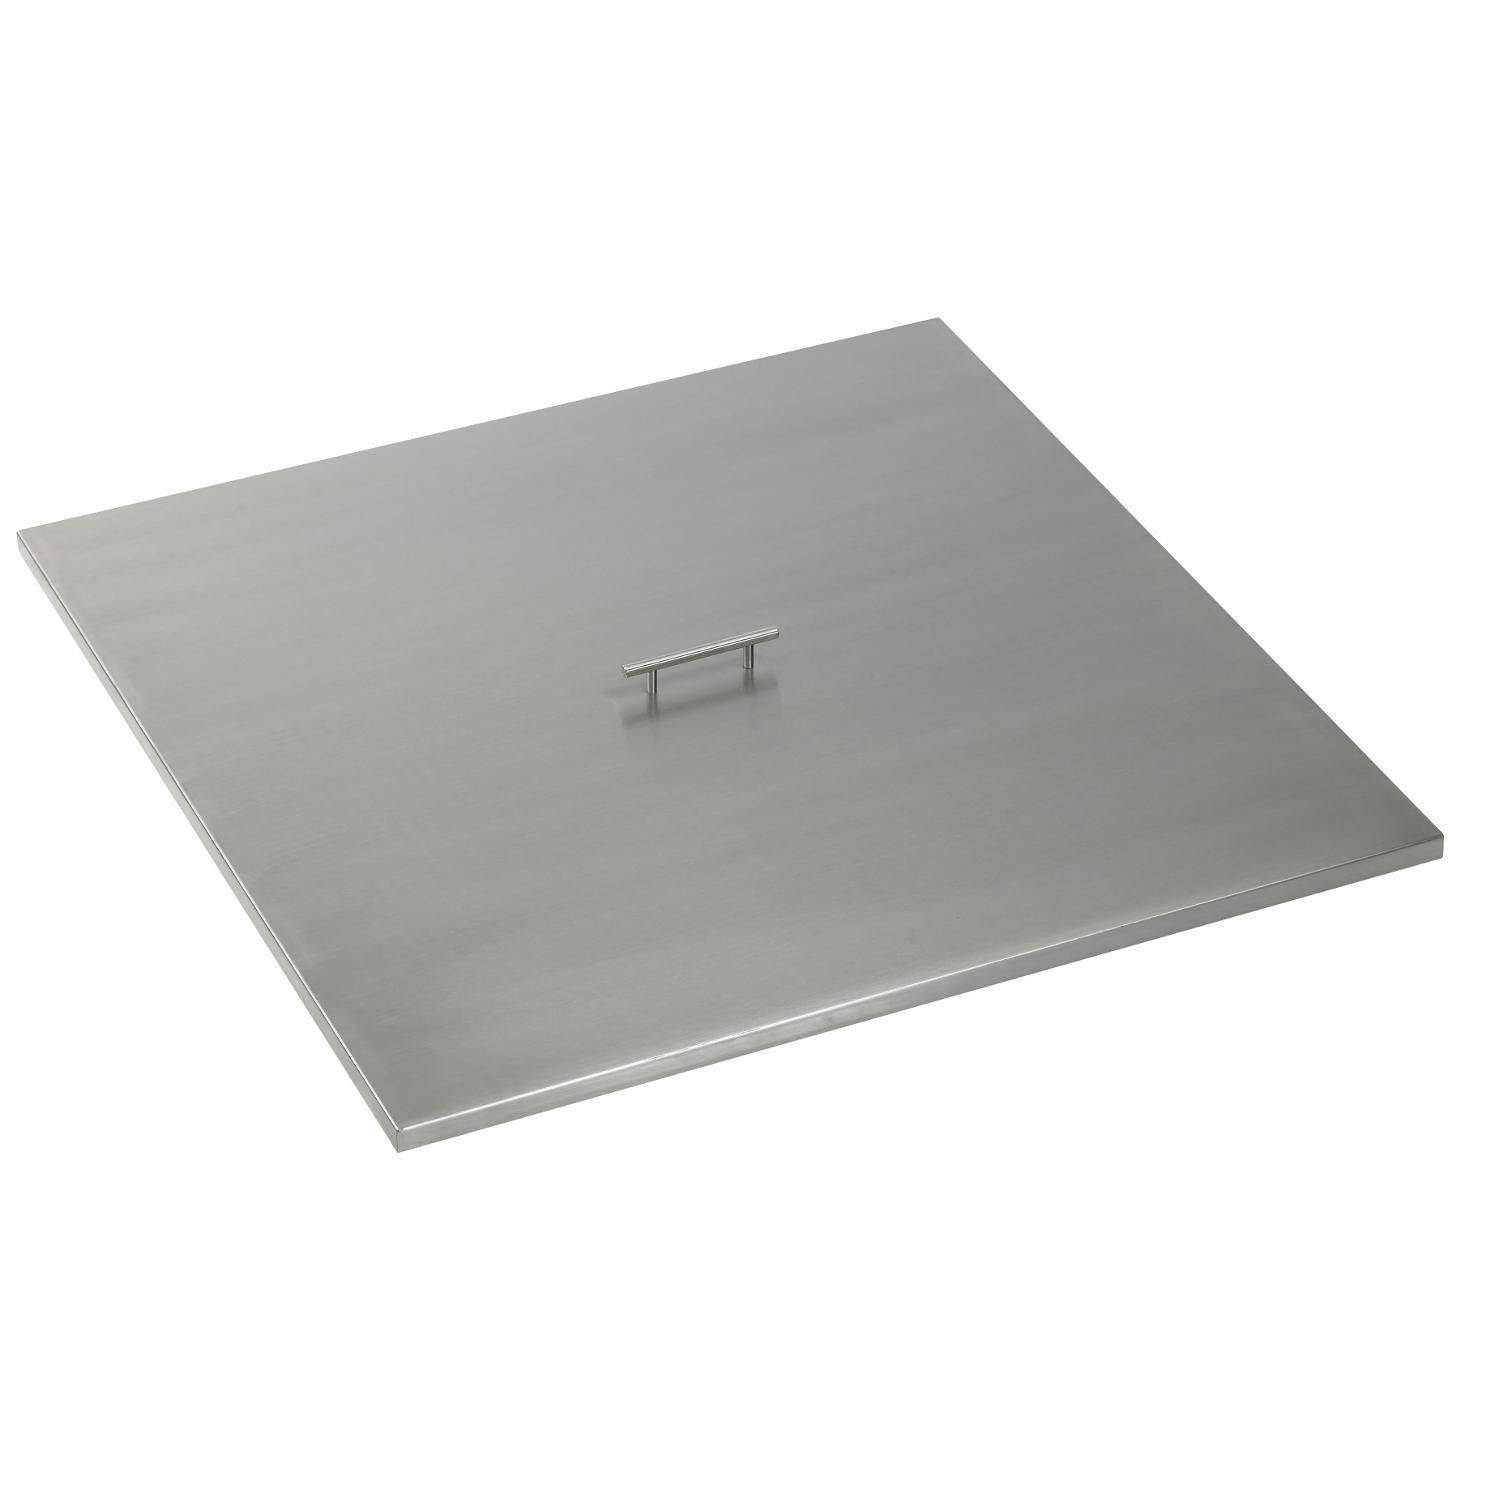 """46"""" x 46"""" Square Stainless Steel Fire Pit Cover -The Outdoor Plus"""